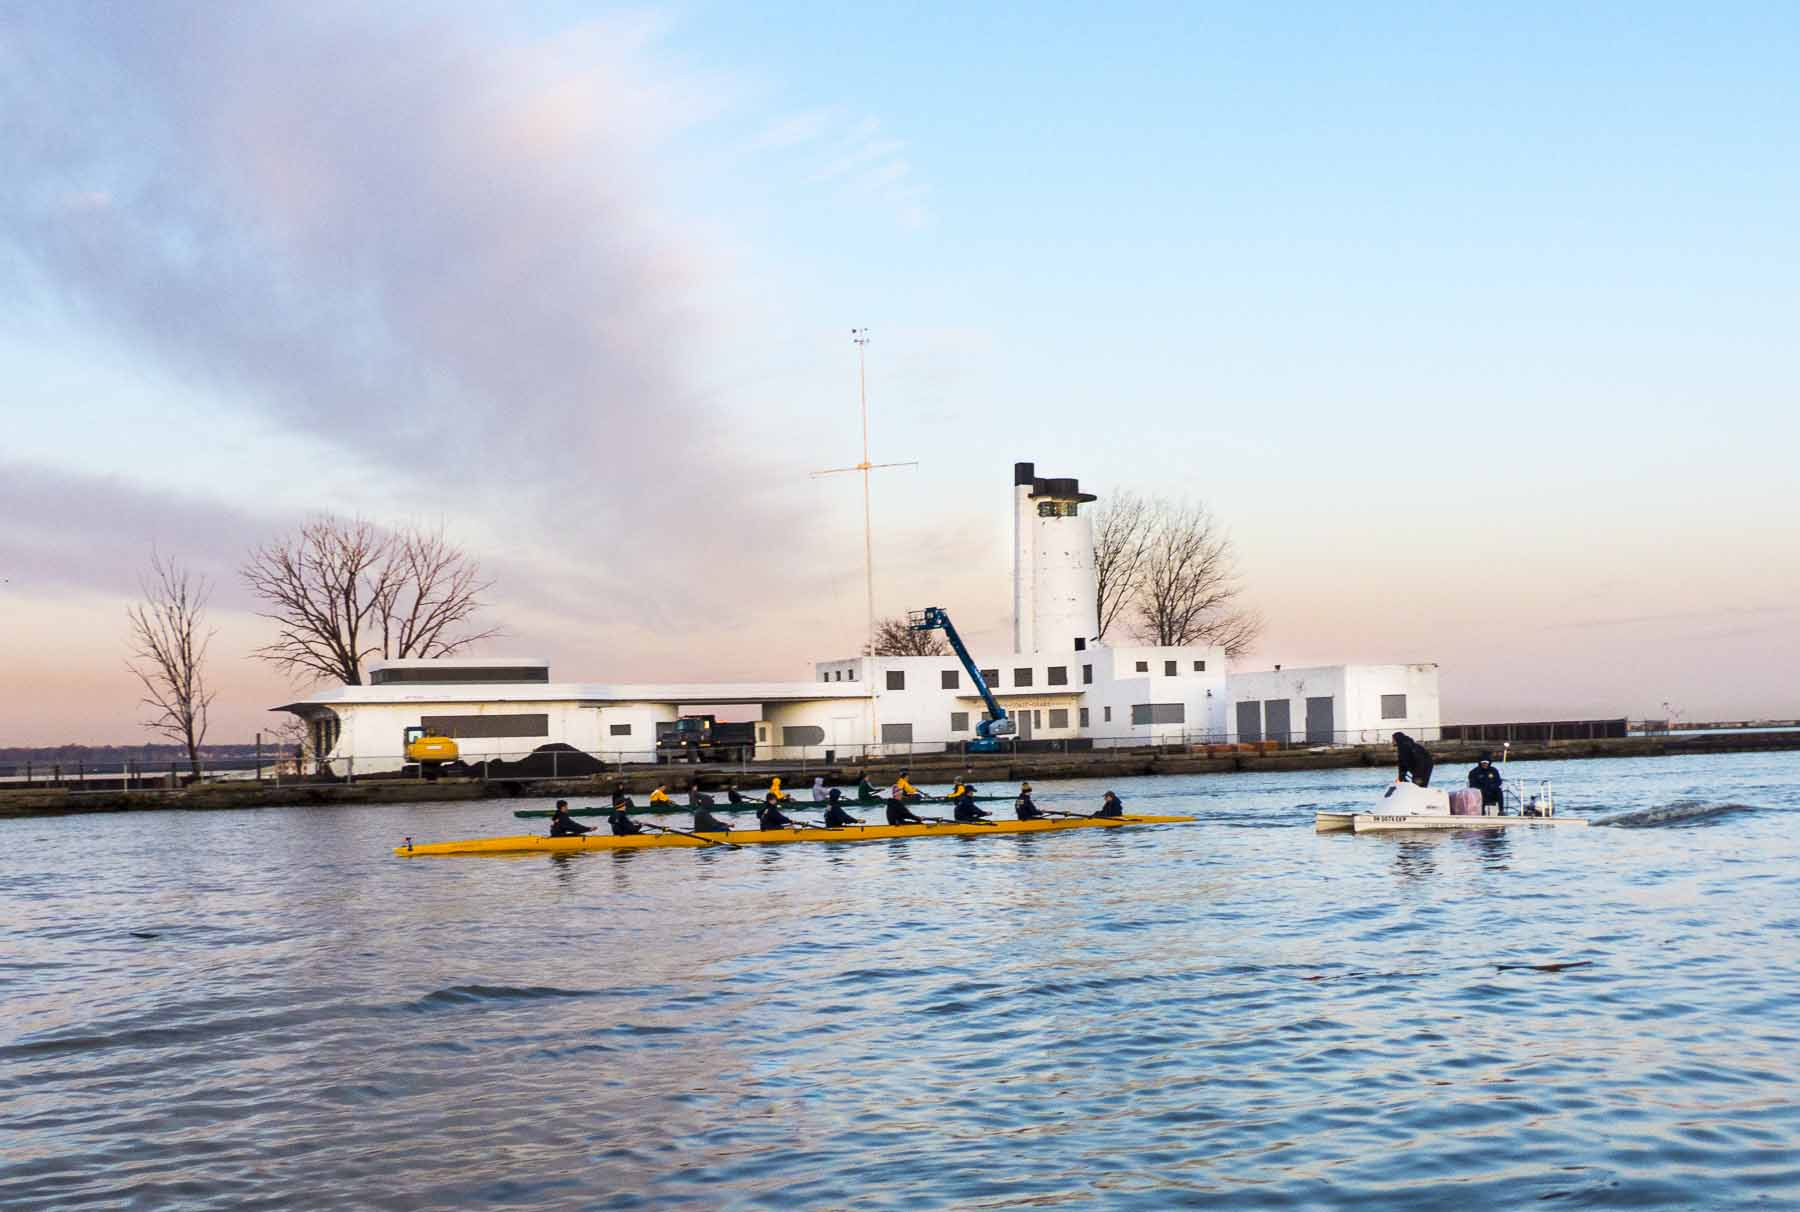 Cleveland Metroparks has begun restoring the Coast Guard Station on Whiskey Island